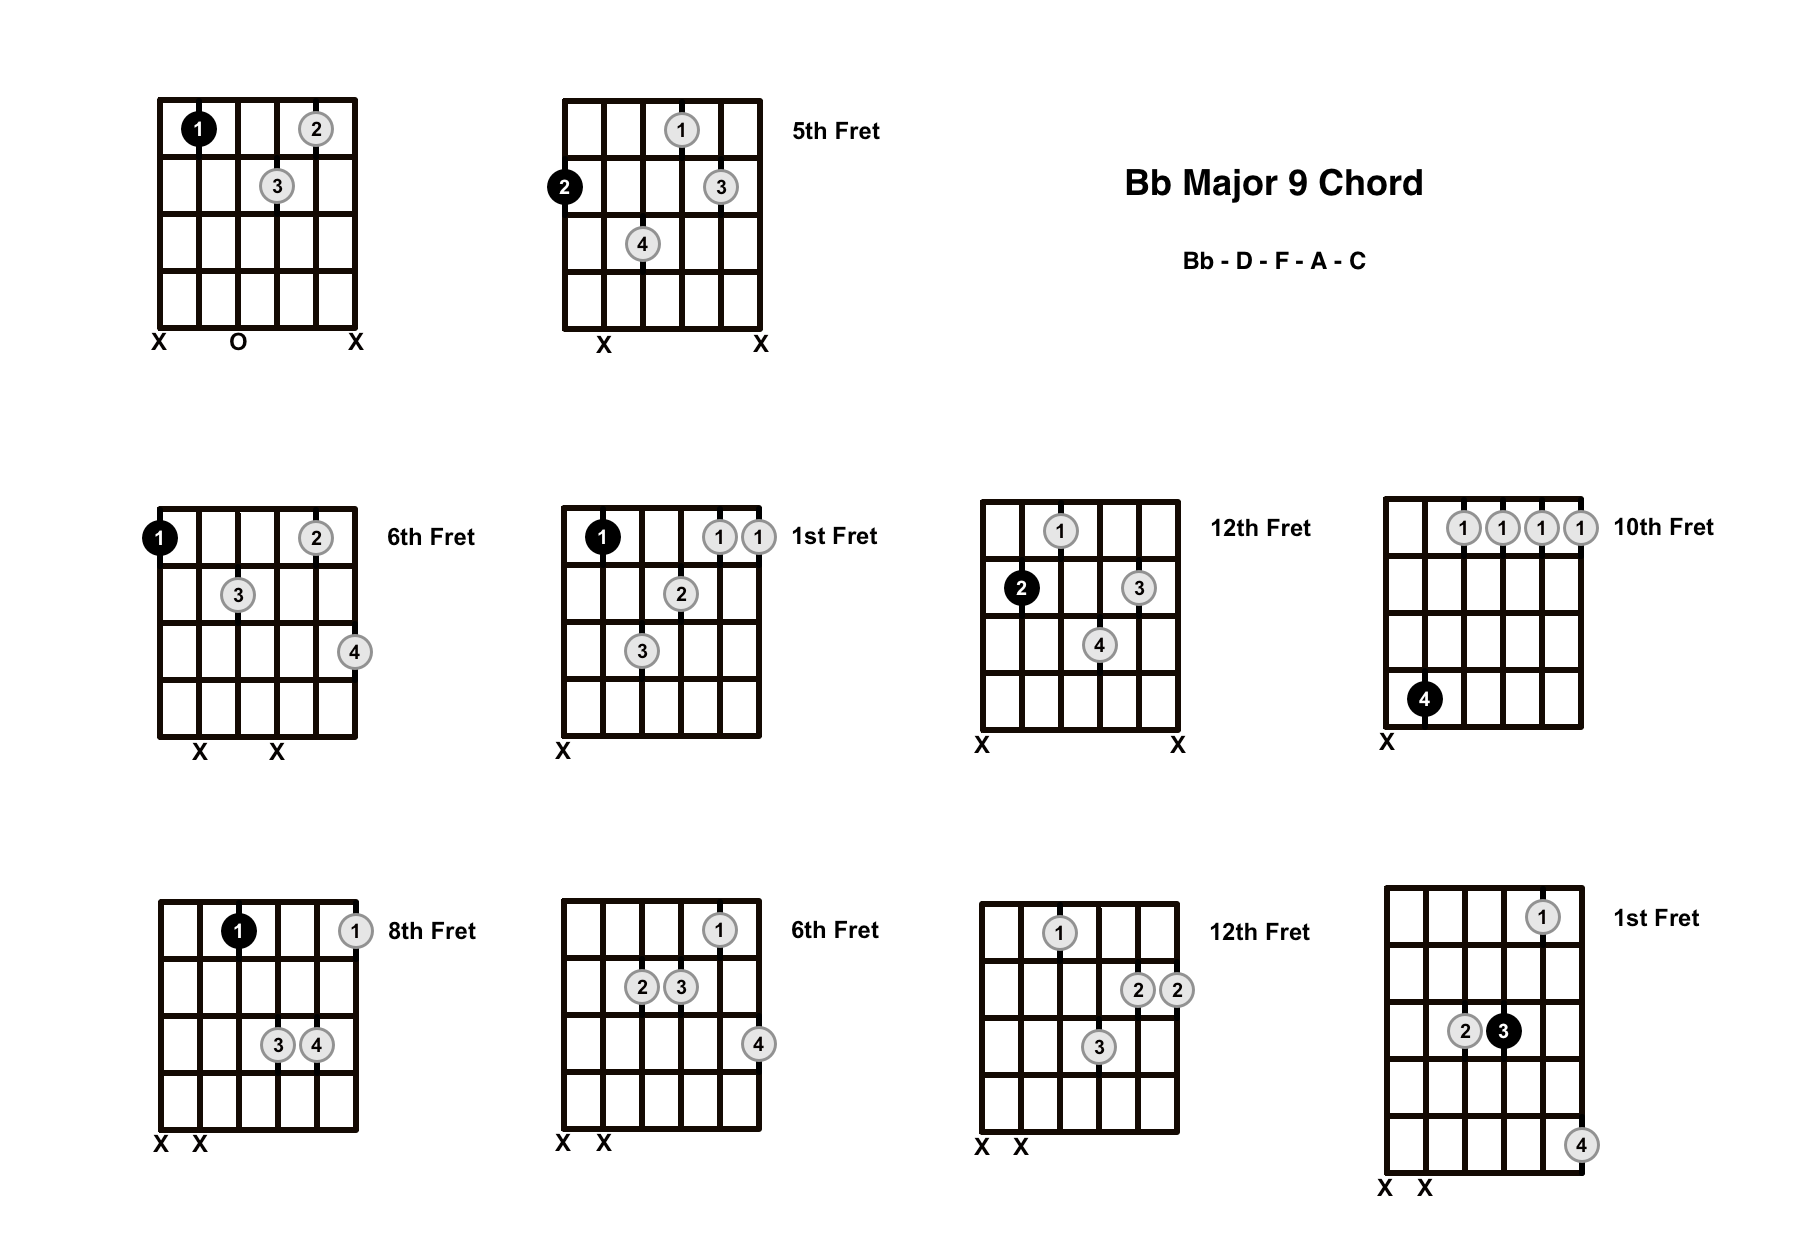 B Flat Major 9 Chord On The Guitar (Bb Maj 9) – Diagrams, Finger Positions and Theory